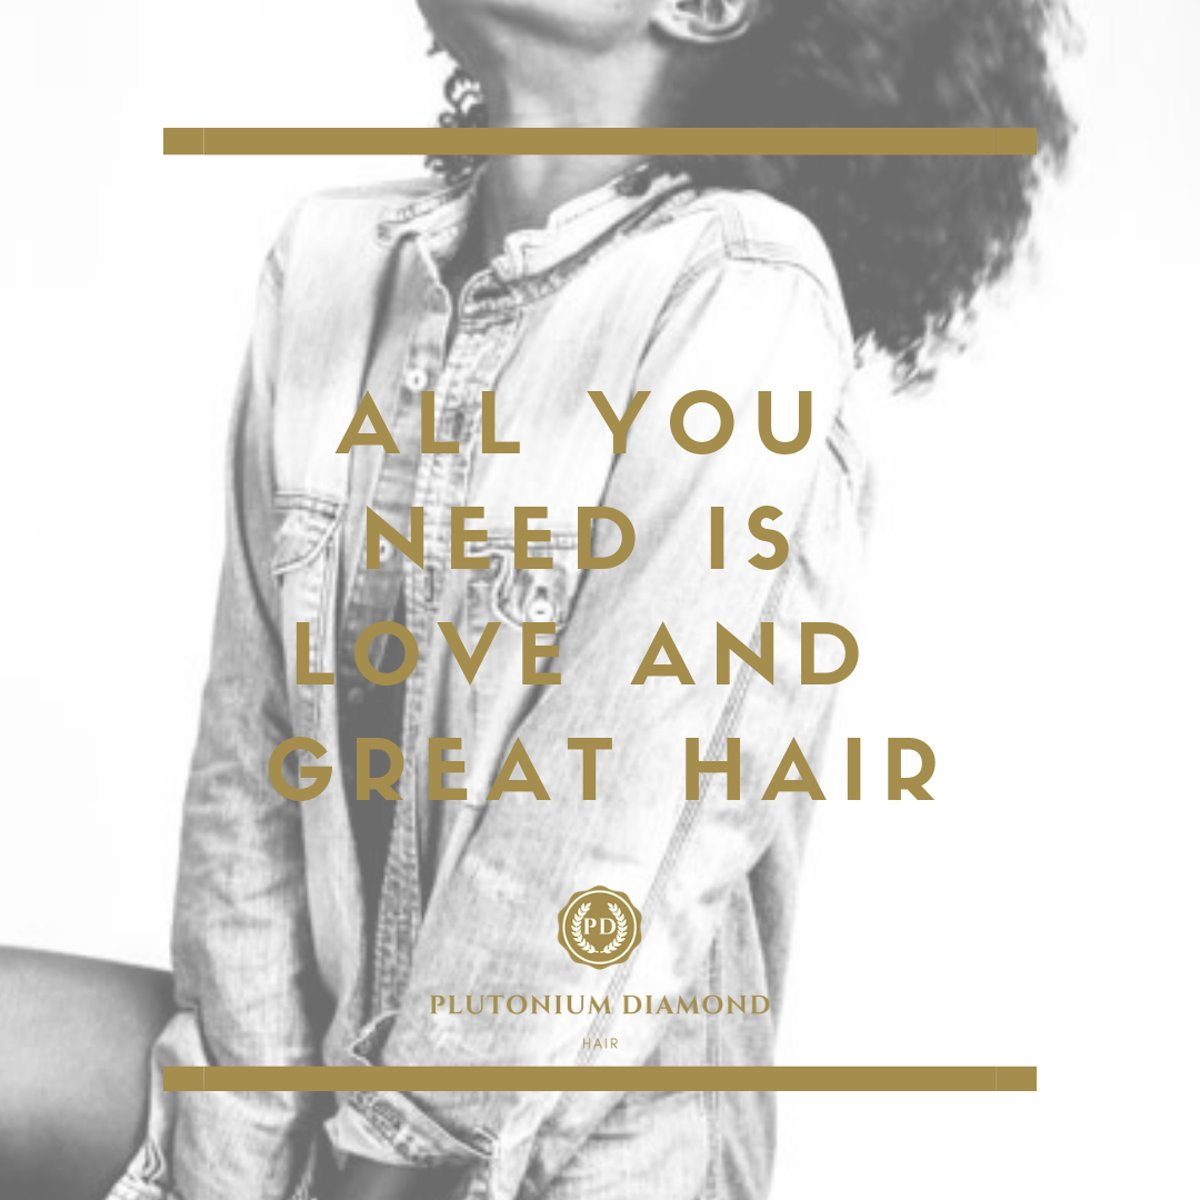 All you need is love and great hair! #PlutoniumDiamondHair